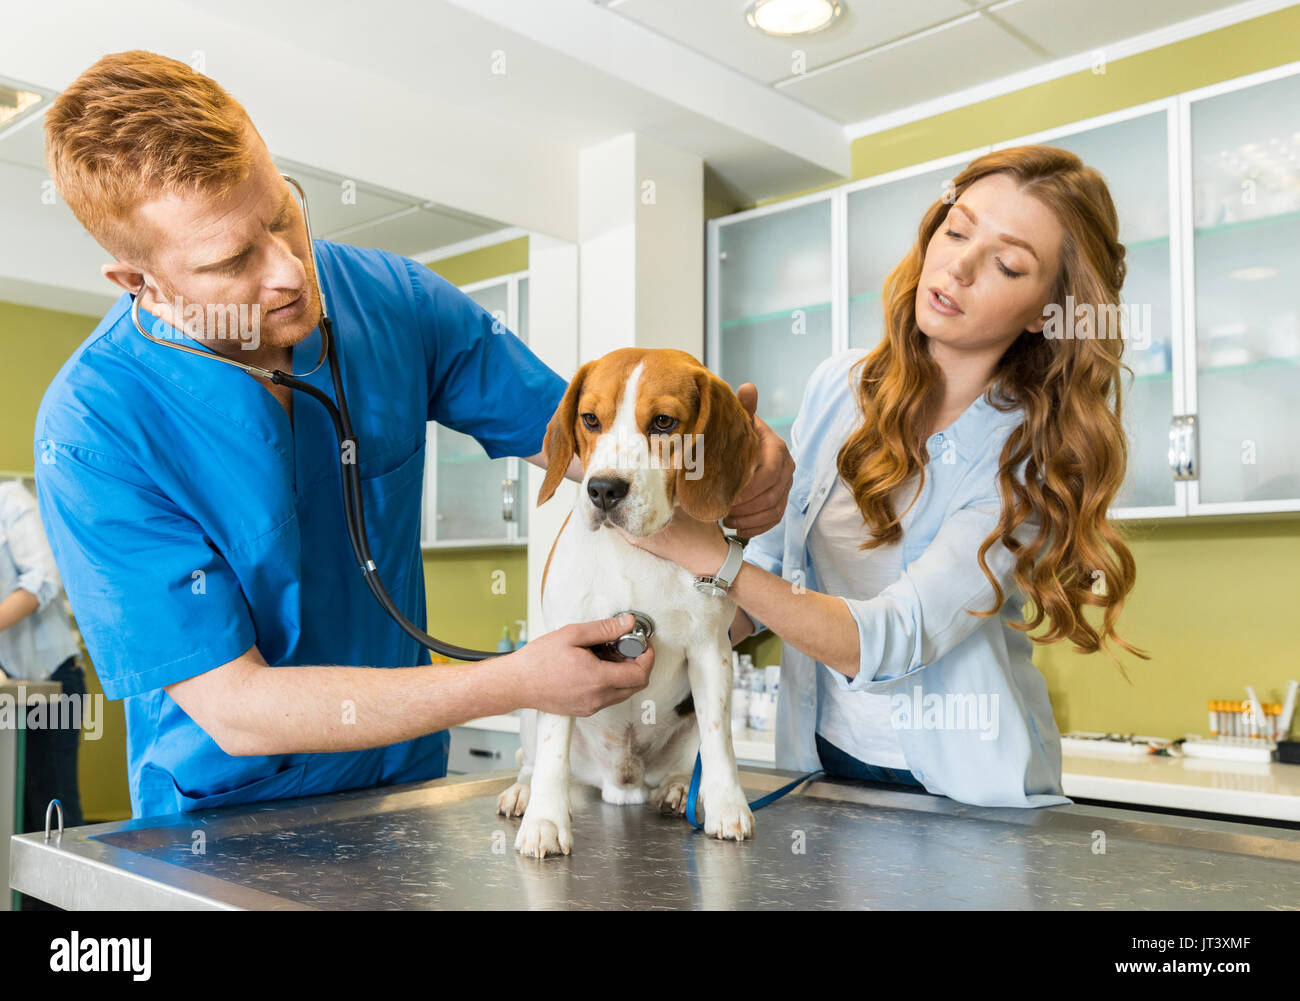 Doctor examining Beagle dog with woman assistant at veterinary clinic - Stock Image